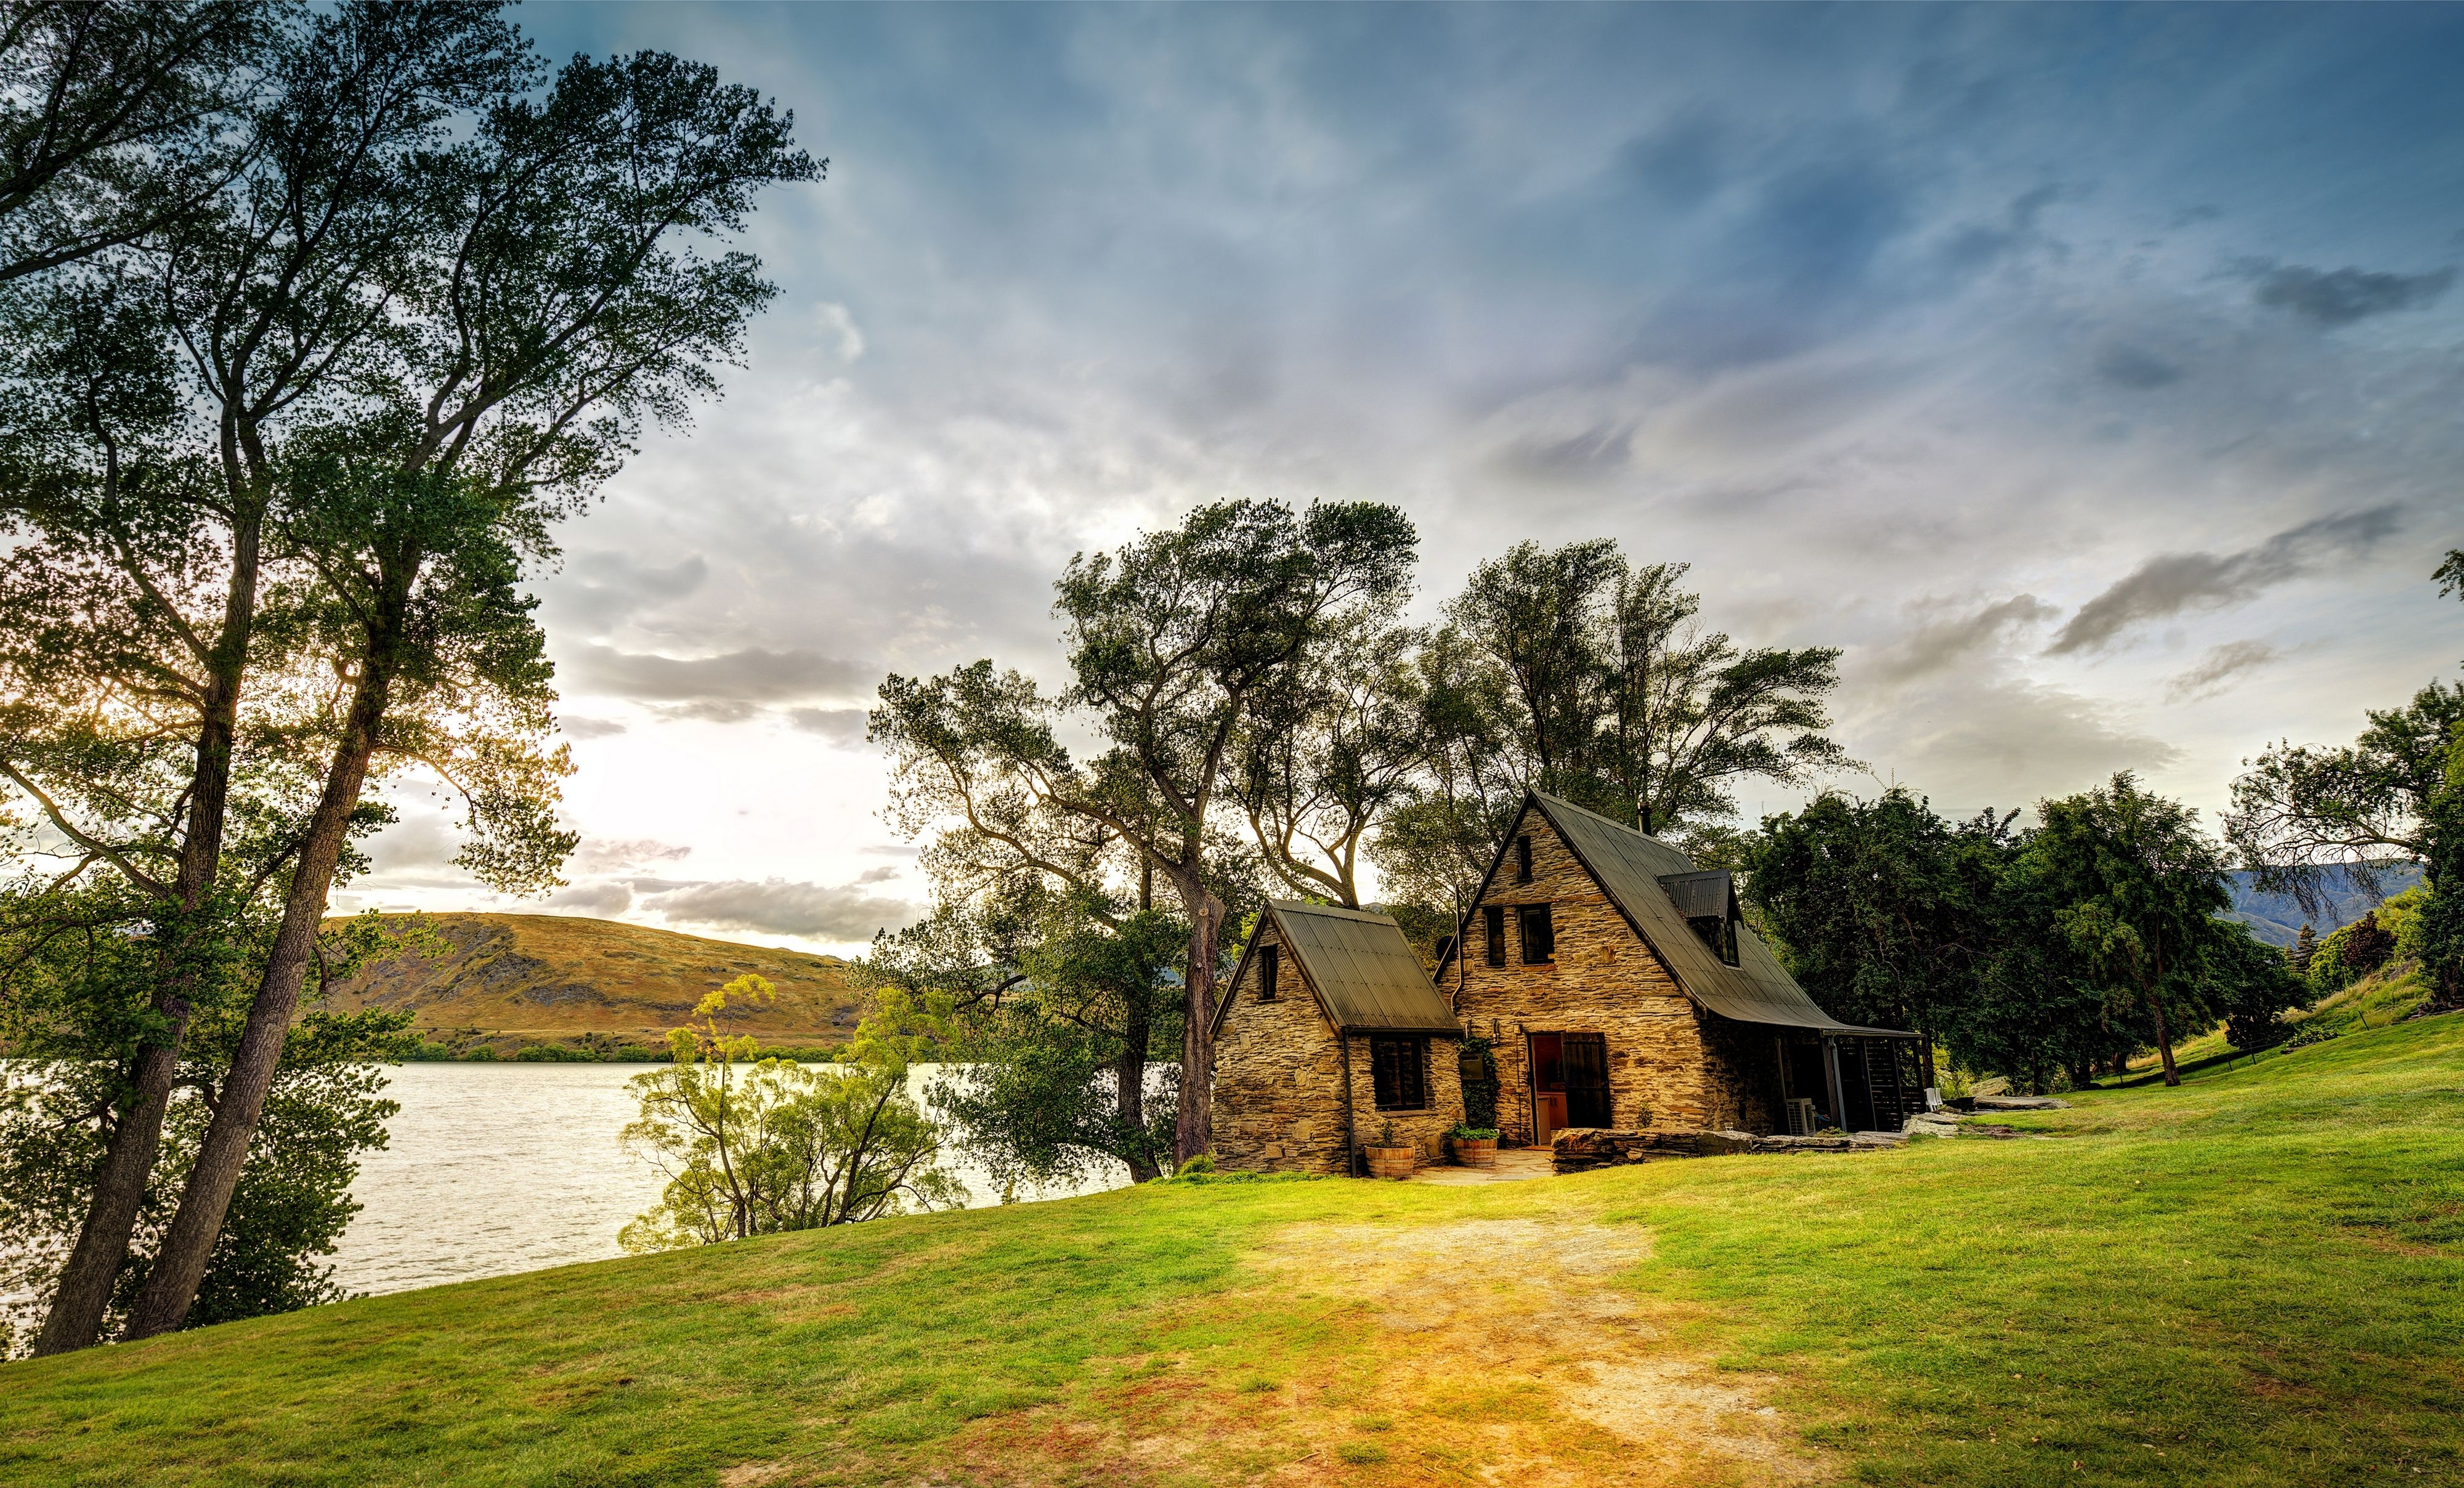 New zealand house lake trees landscape wallpaper for House landscape